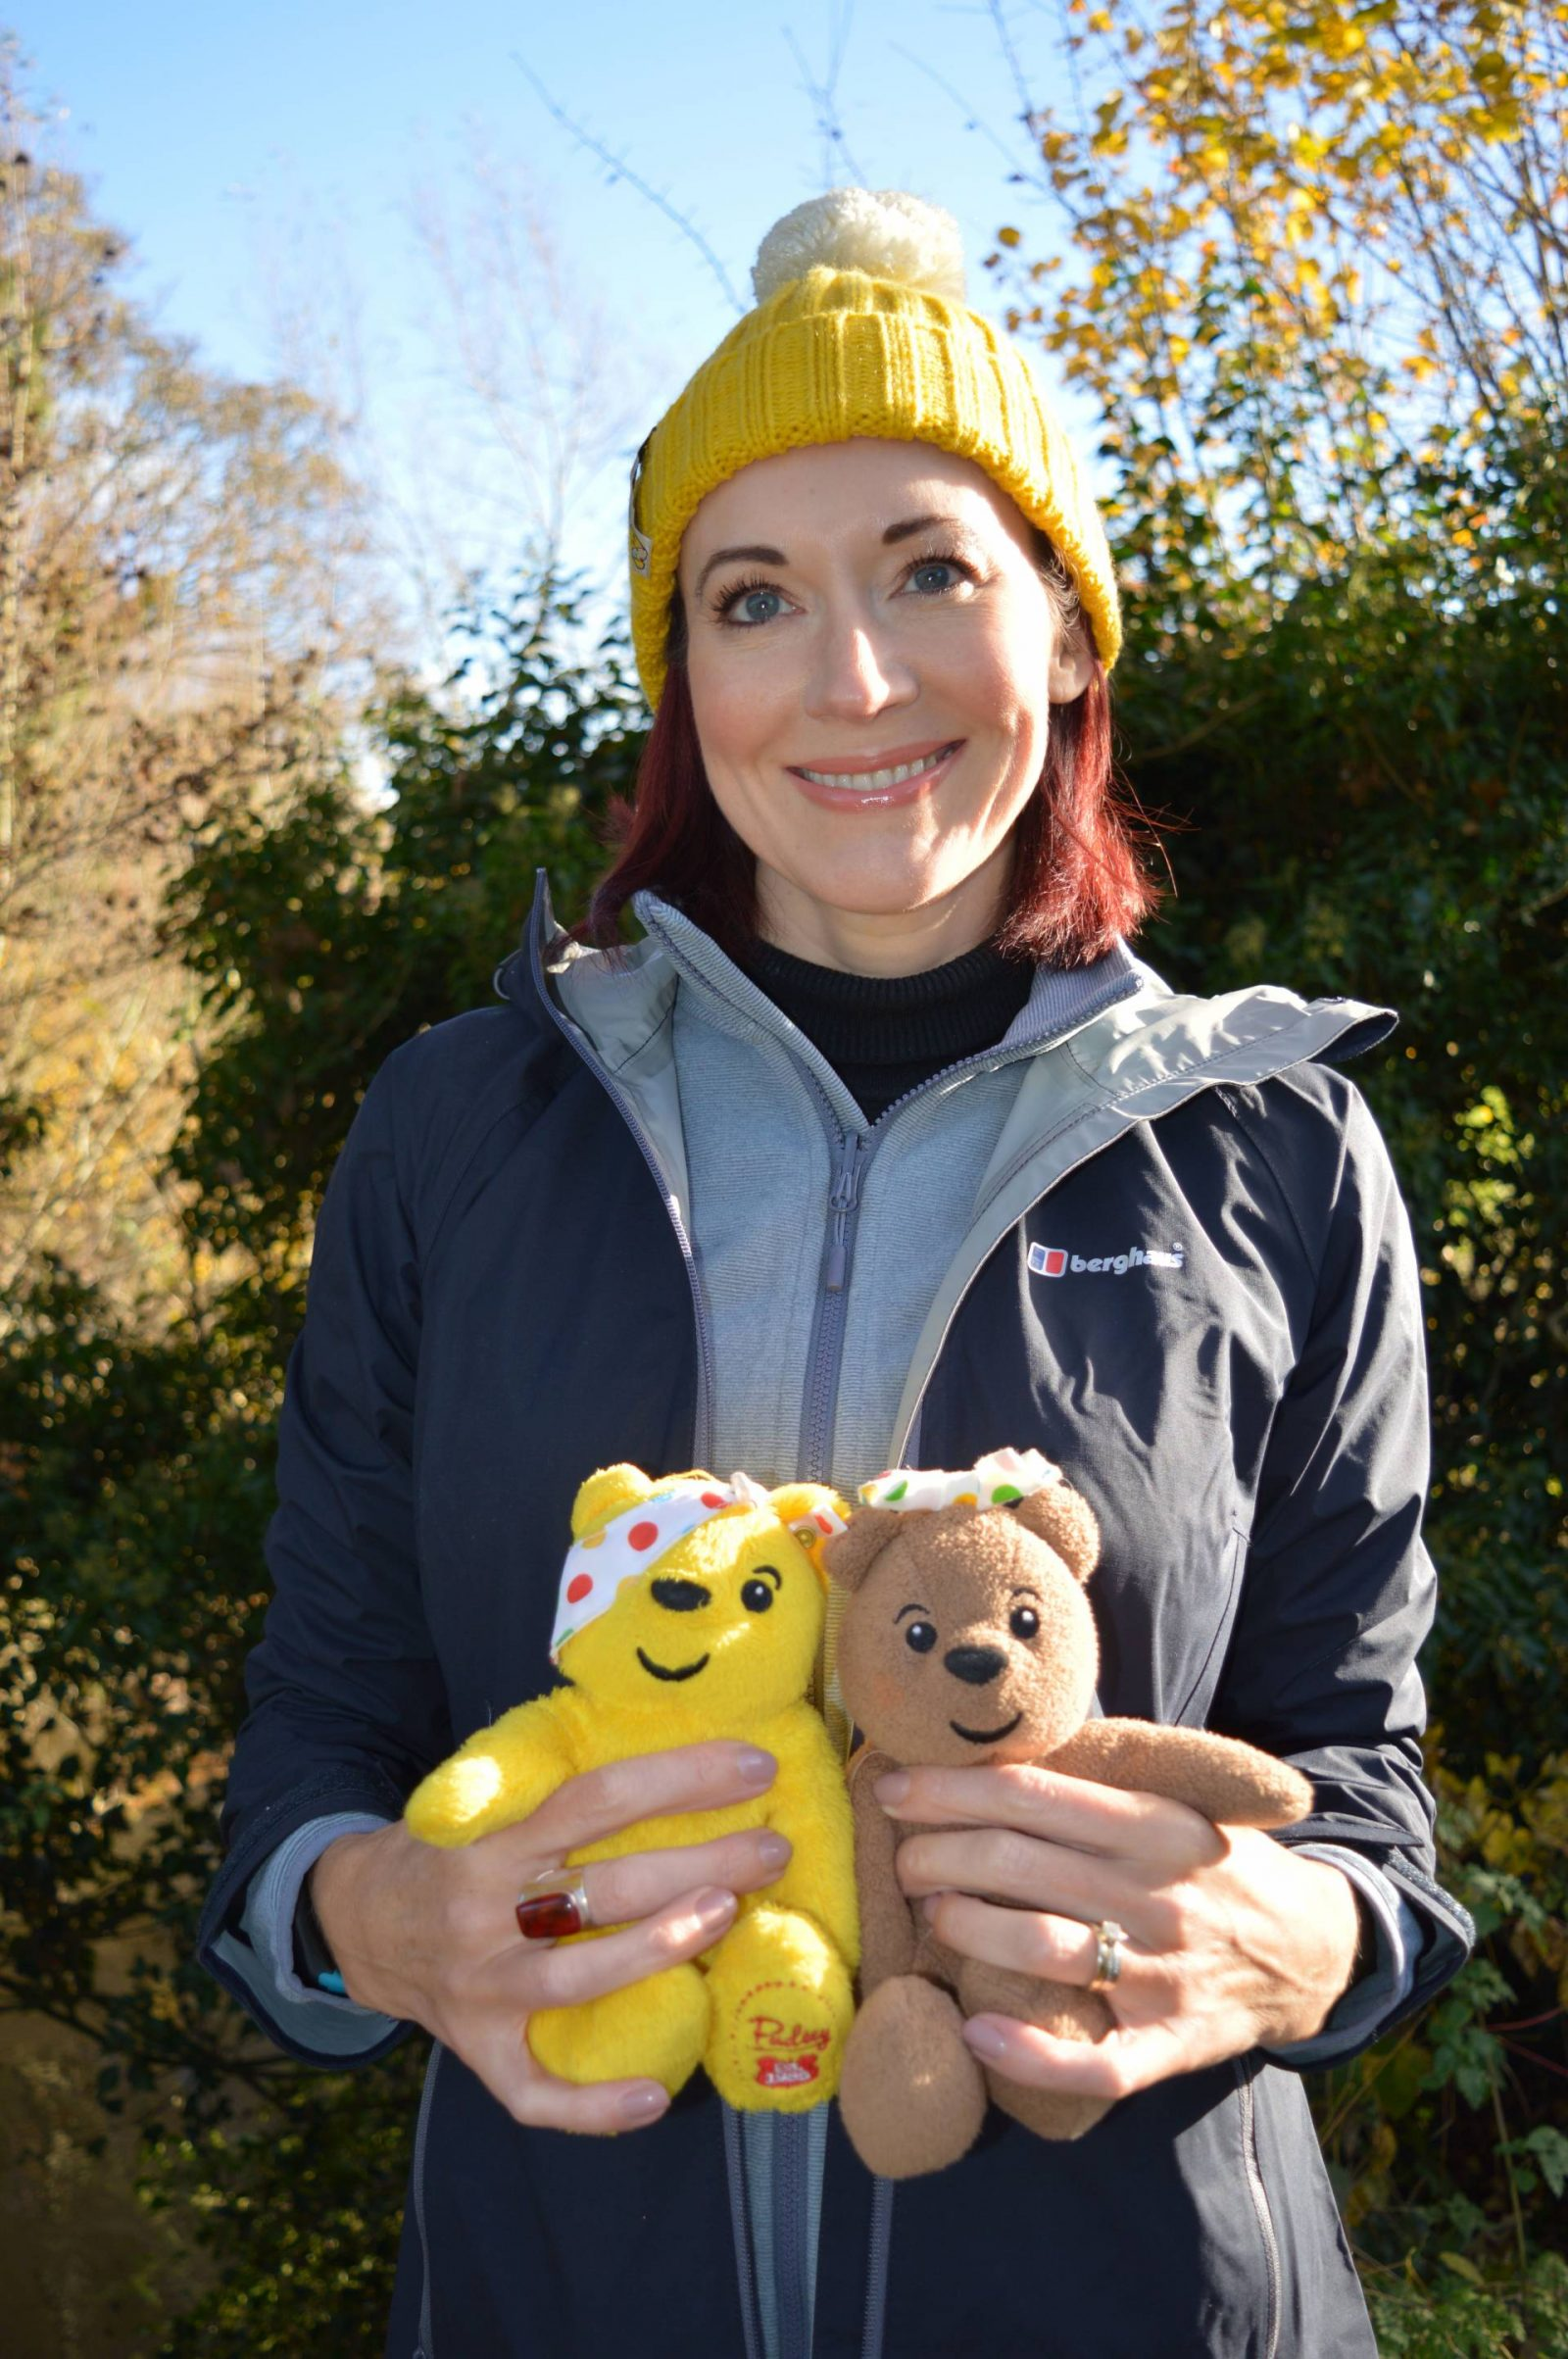 Dressing for adventure in the great outdoors, Children in Need Countryfile bobble hat, Pudsey and Blush bear